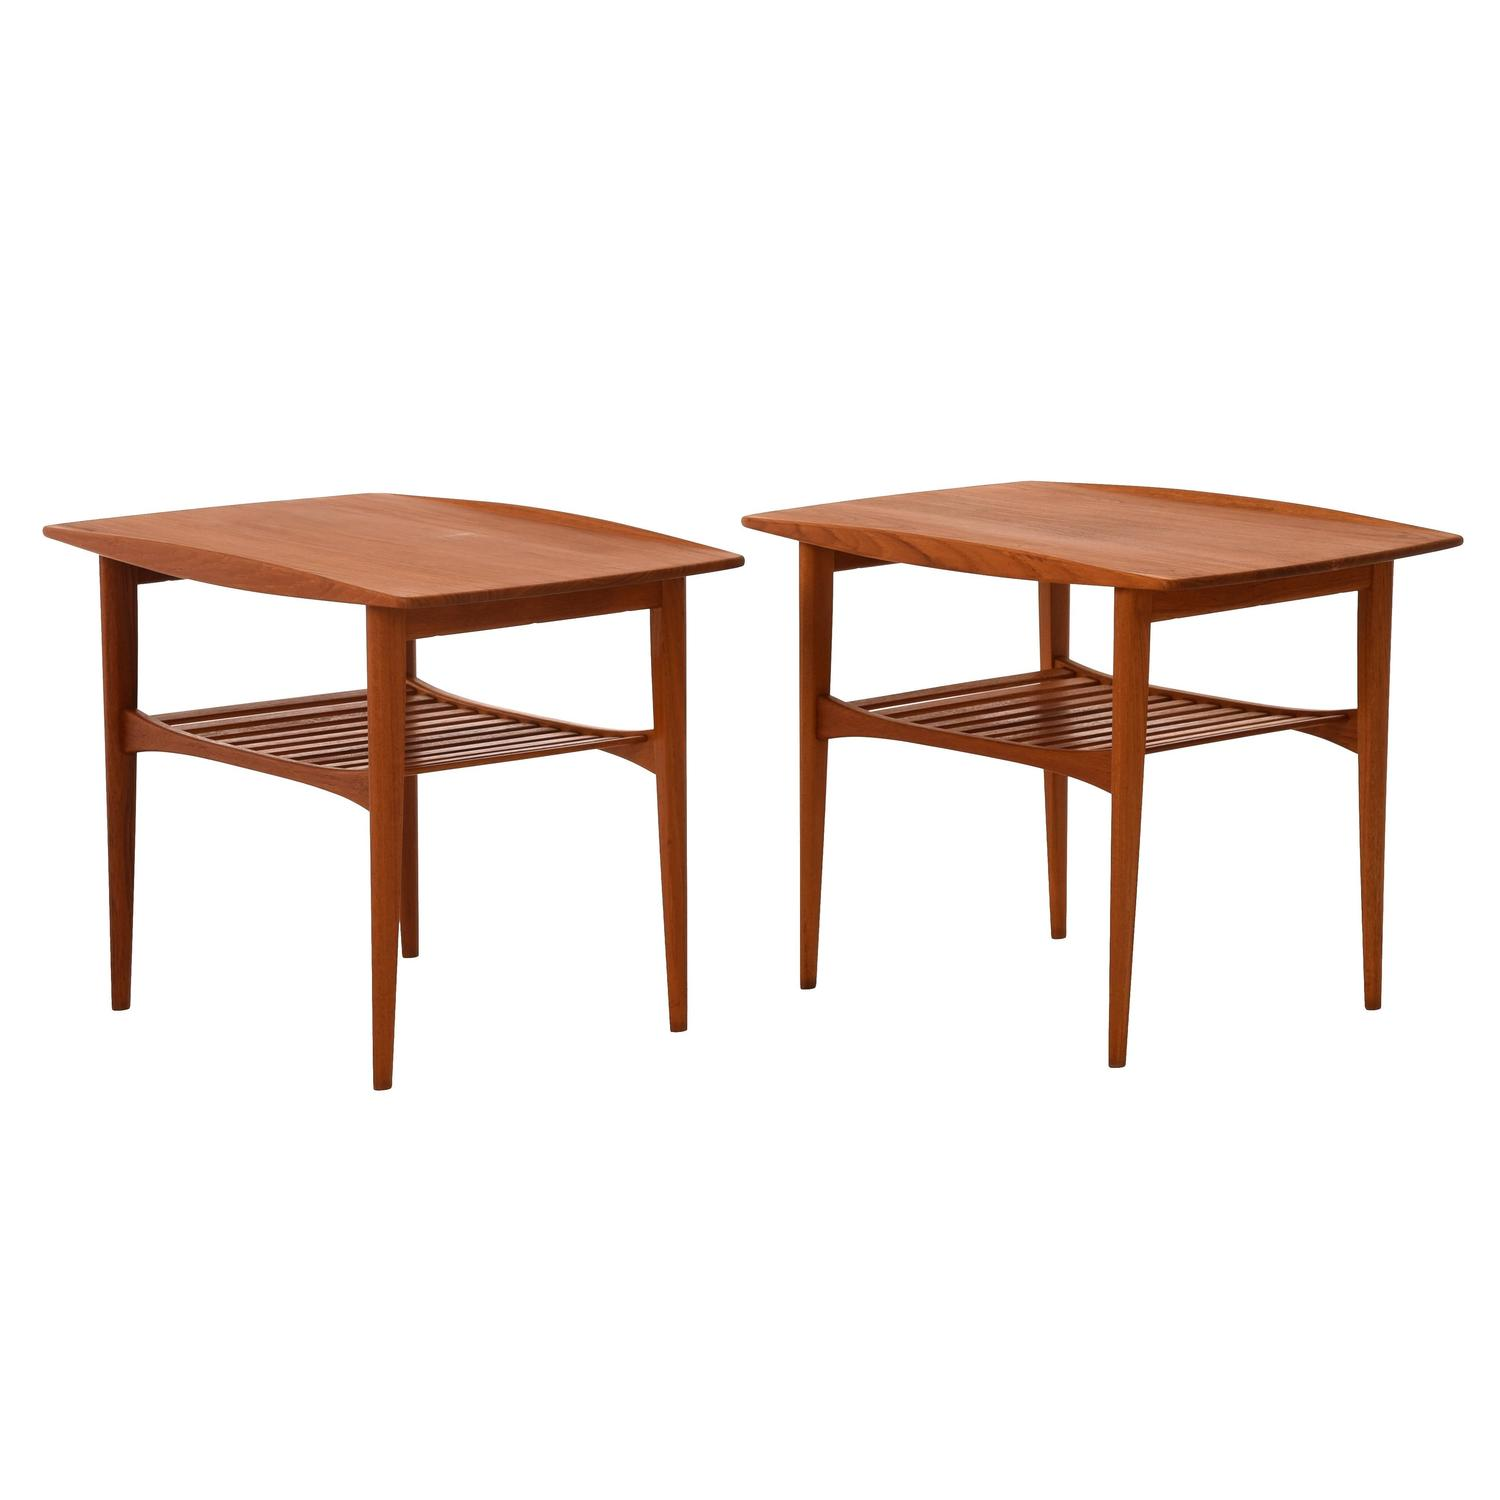 Danish modern side table at 1stdibs Modern side table